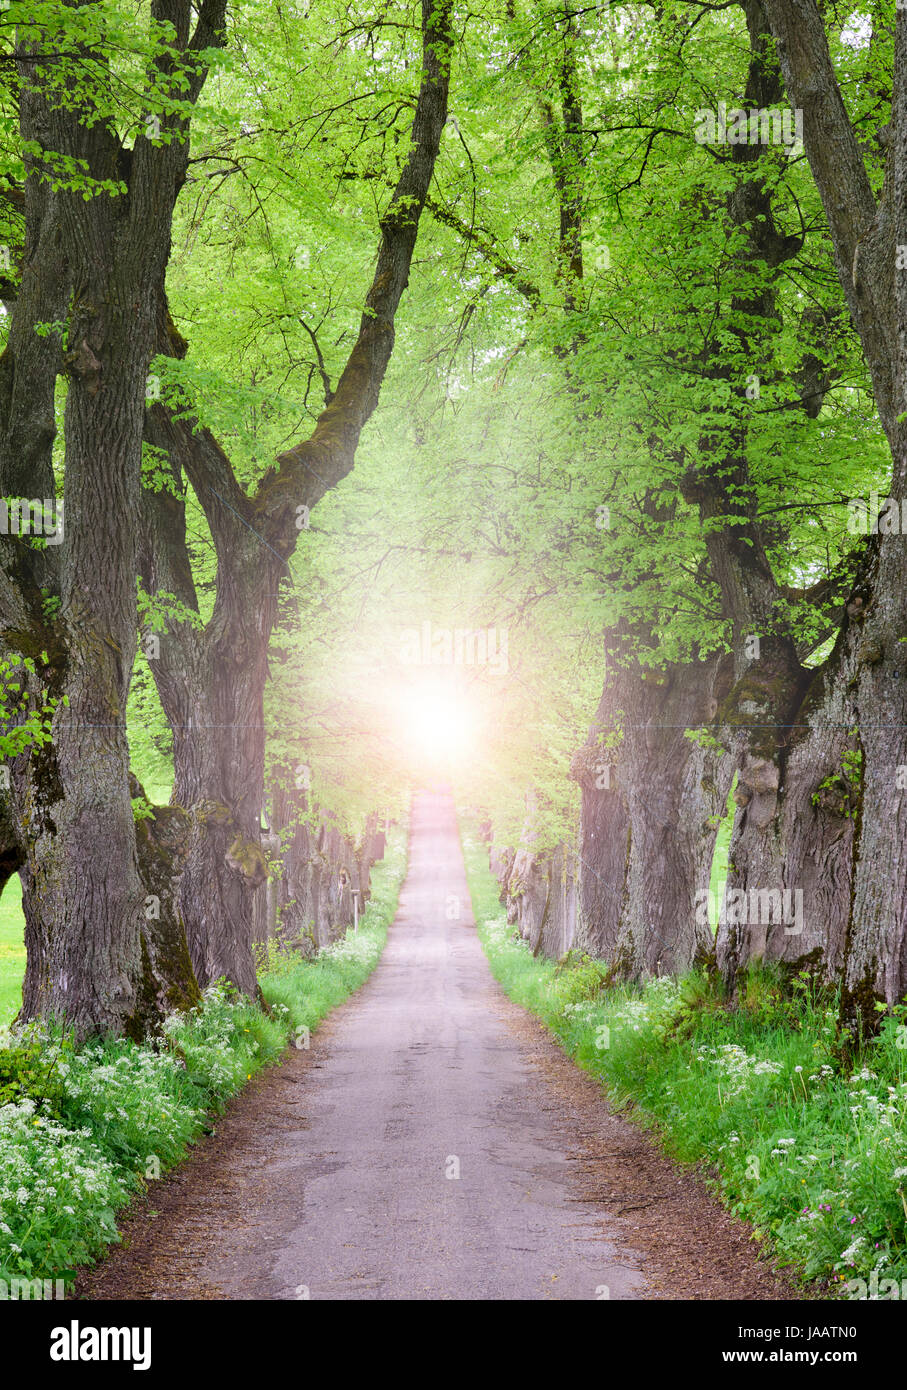 linden tree avenue with small path inside and spiritual and mystical sunlight at the end - Stock Image